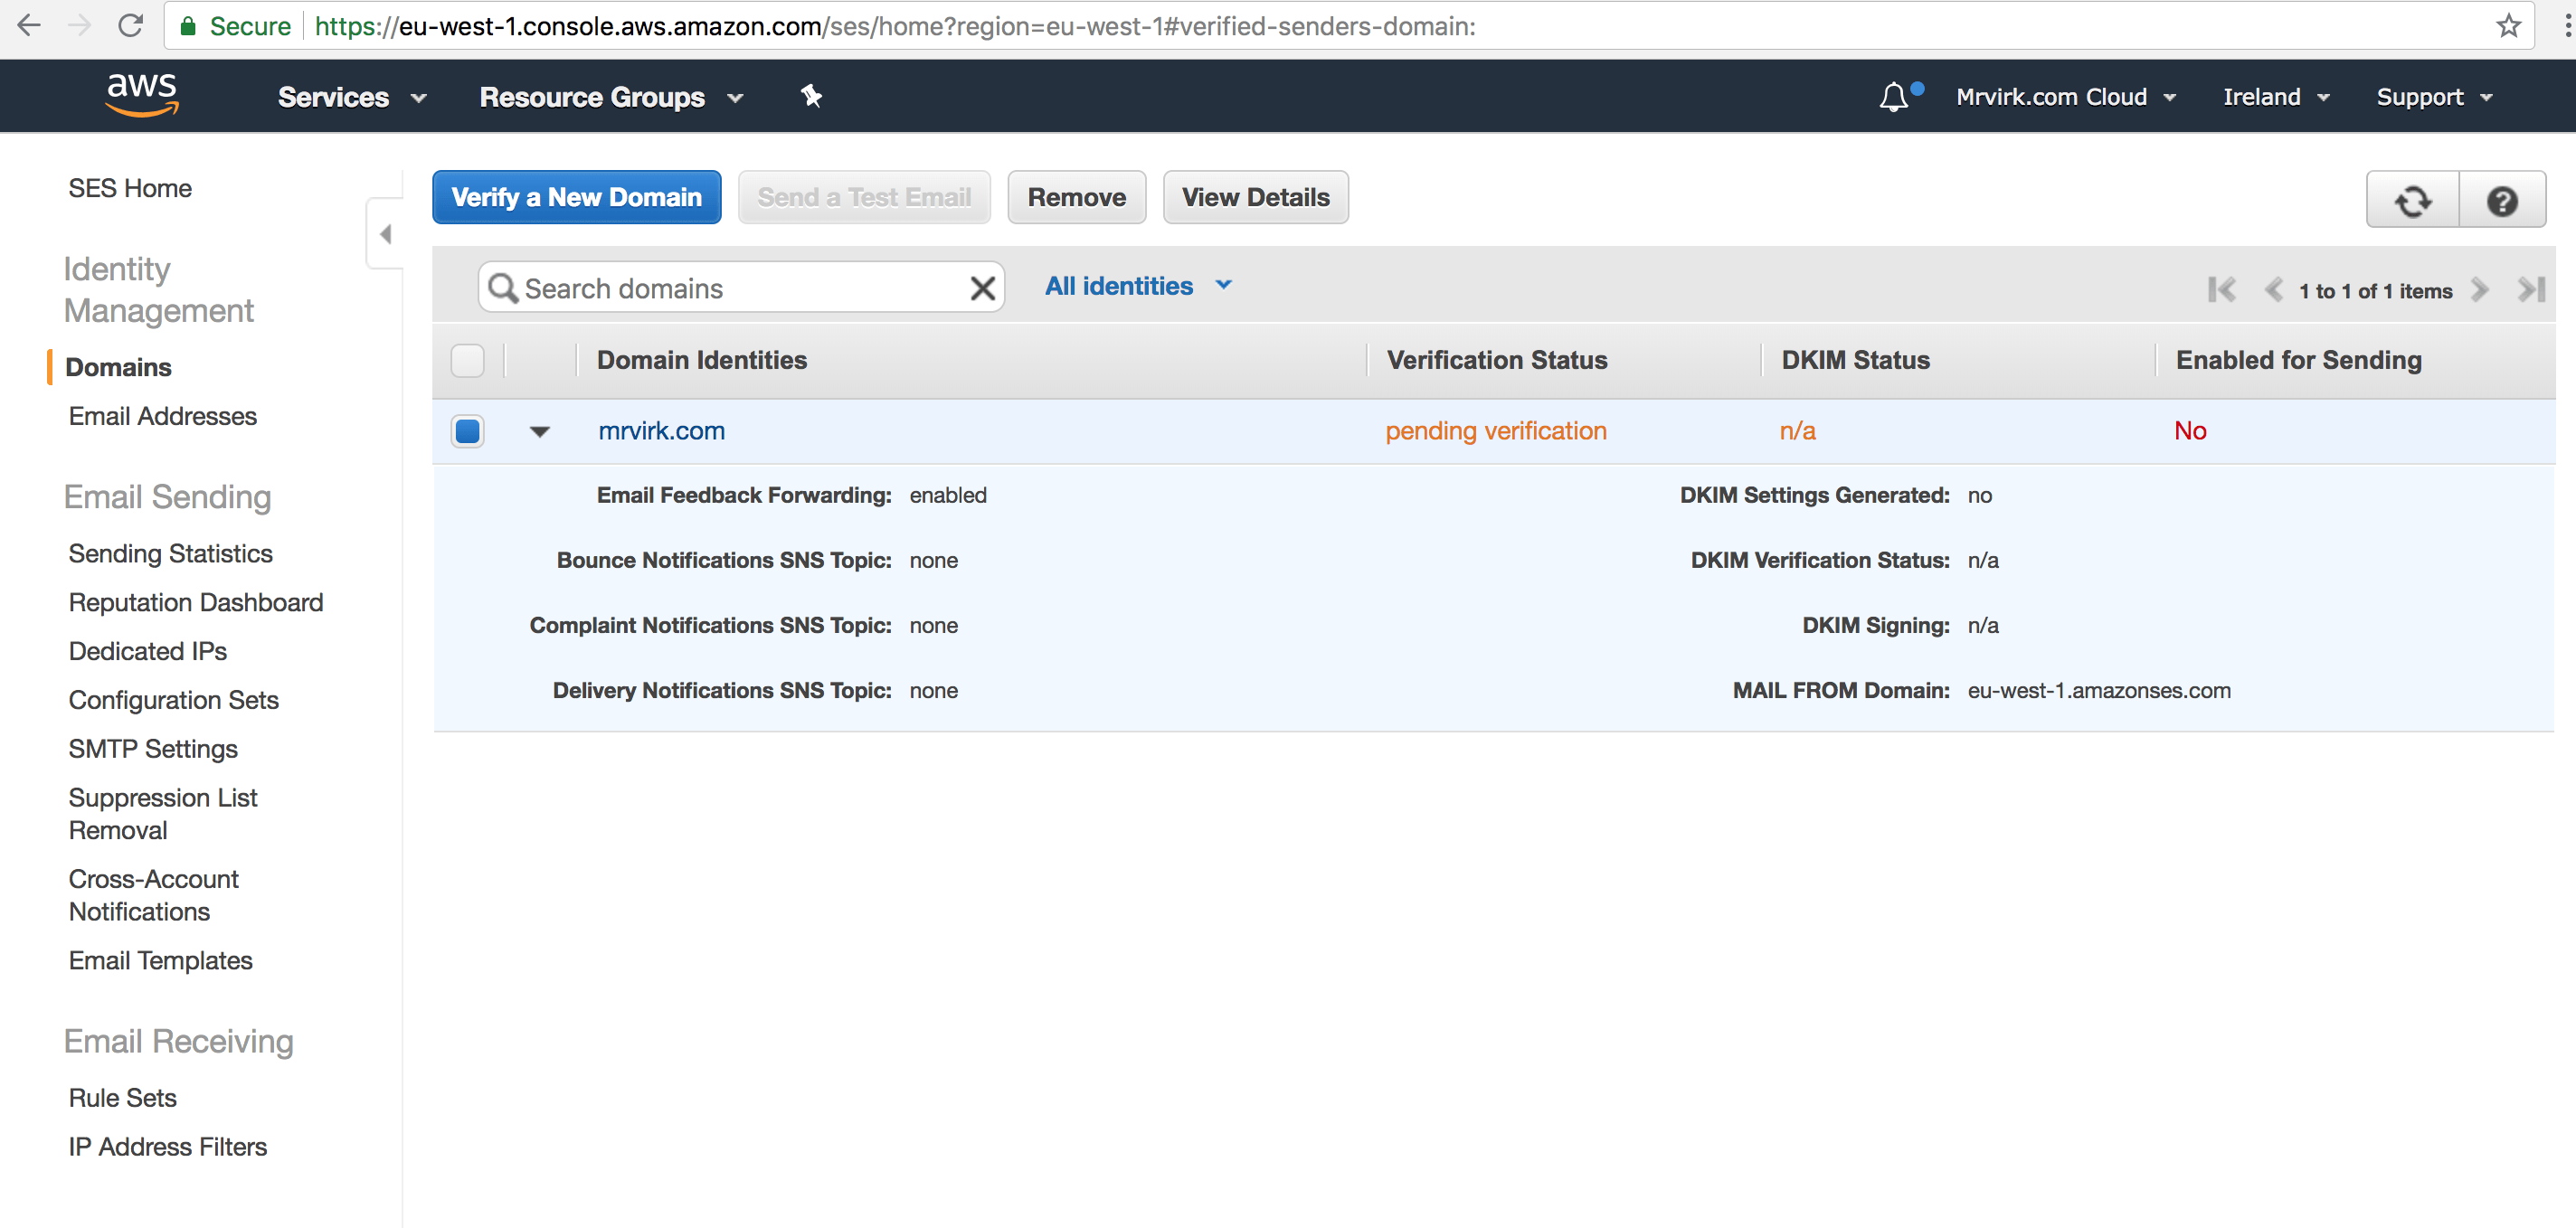 aws simple email service SES